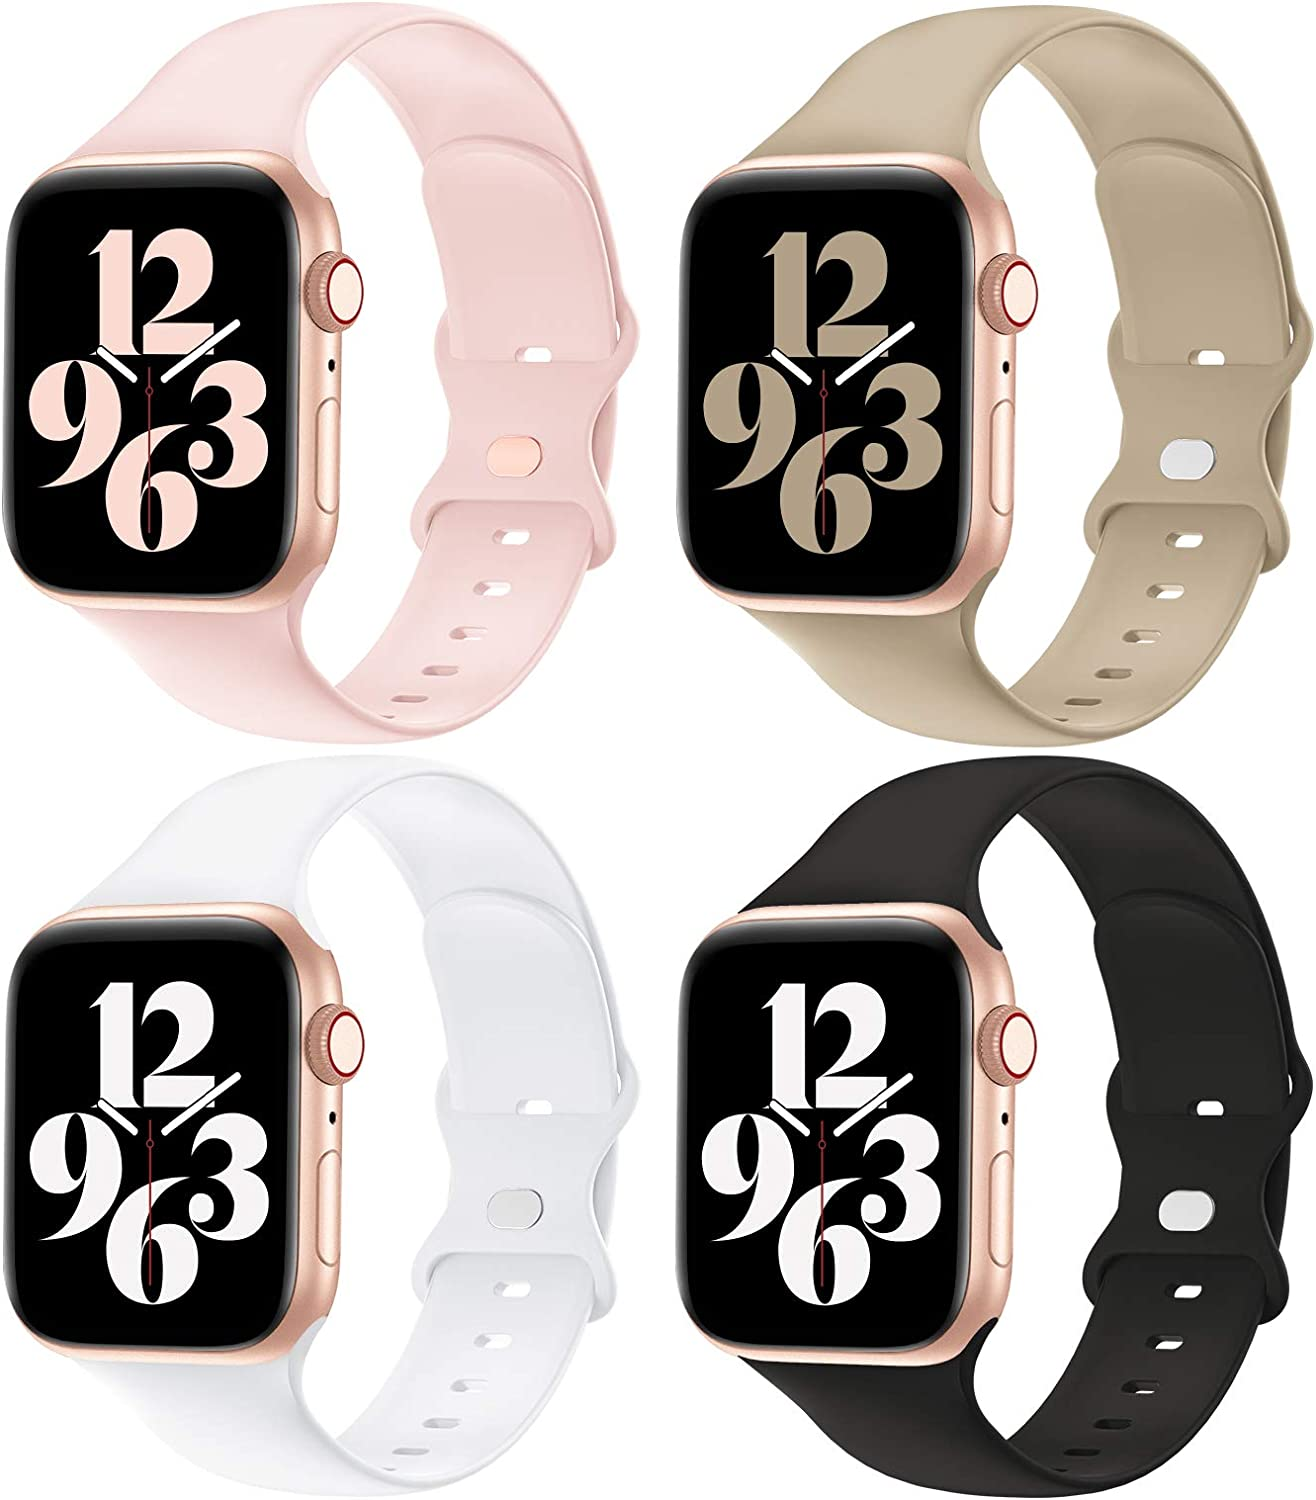 YAXIN Compatible with Apple Watch Band 38MM 40MM 42MM 44MM Women and Men,Soft Silicone Replacement Strap Band for iWatch Series 6 5 4 3 2 1 SE